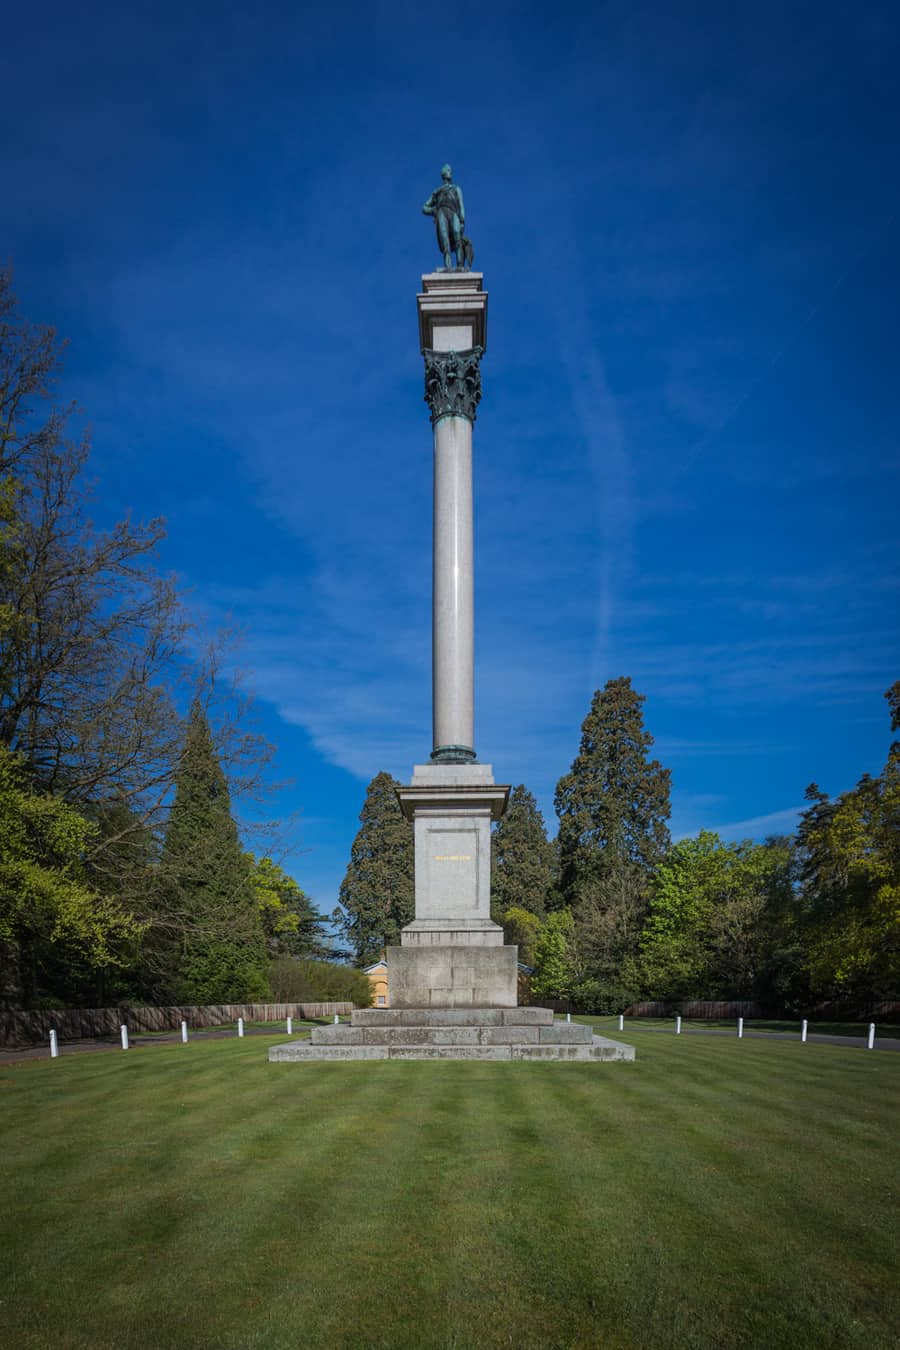 Wellington Memorial Image 2 by Rick McEvoy Architectural Photographer